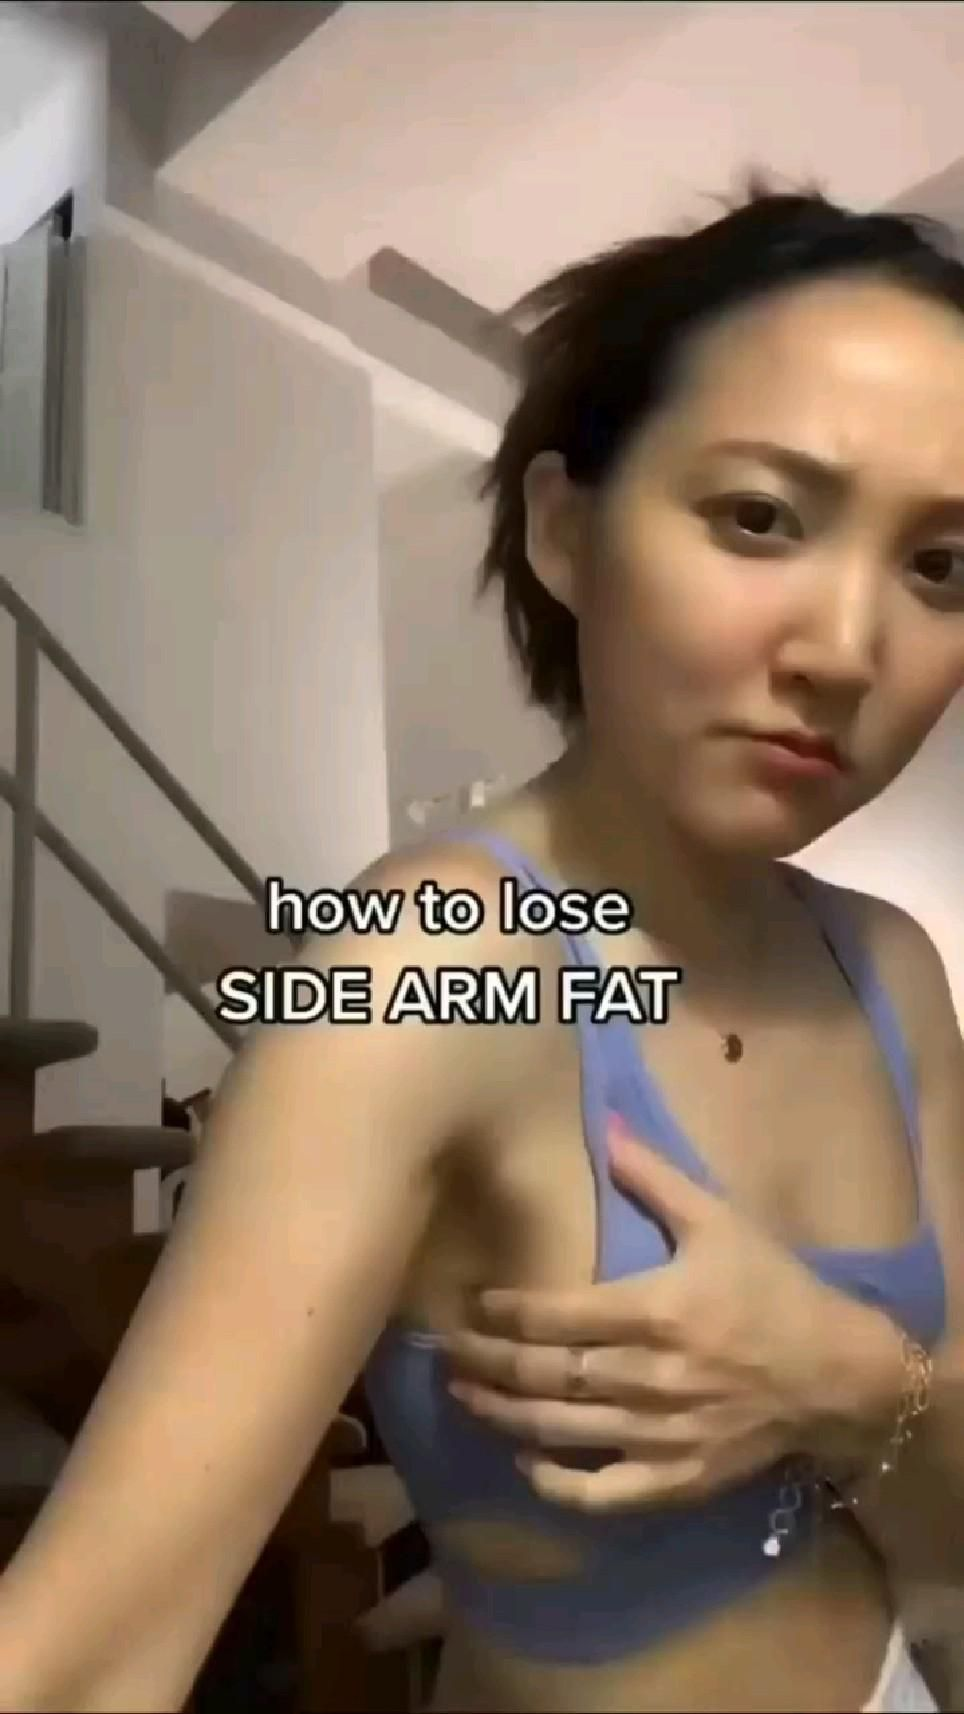 How to lose SIDE ARM FAT FOR WOMEN